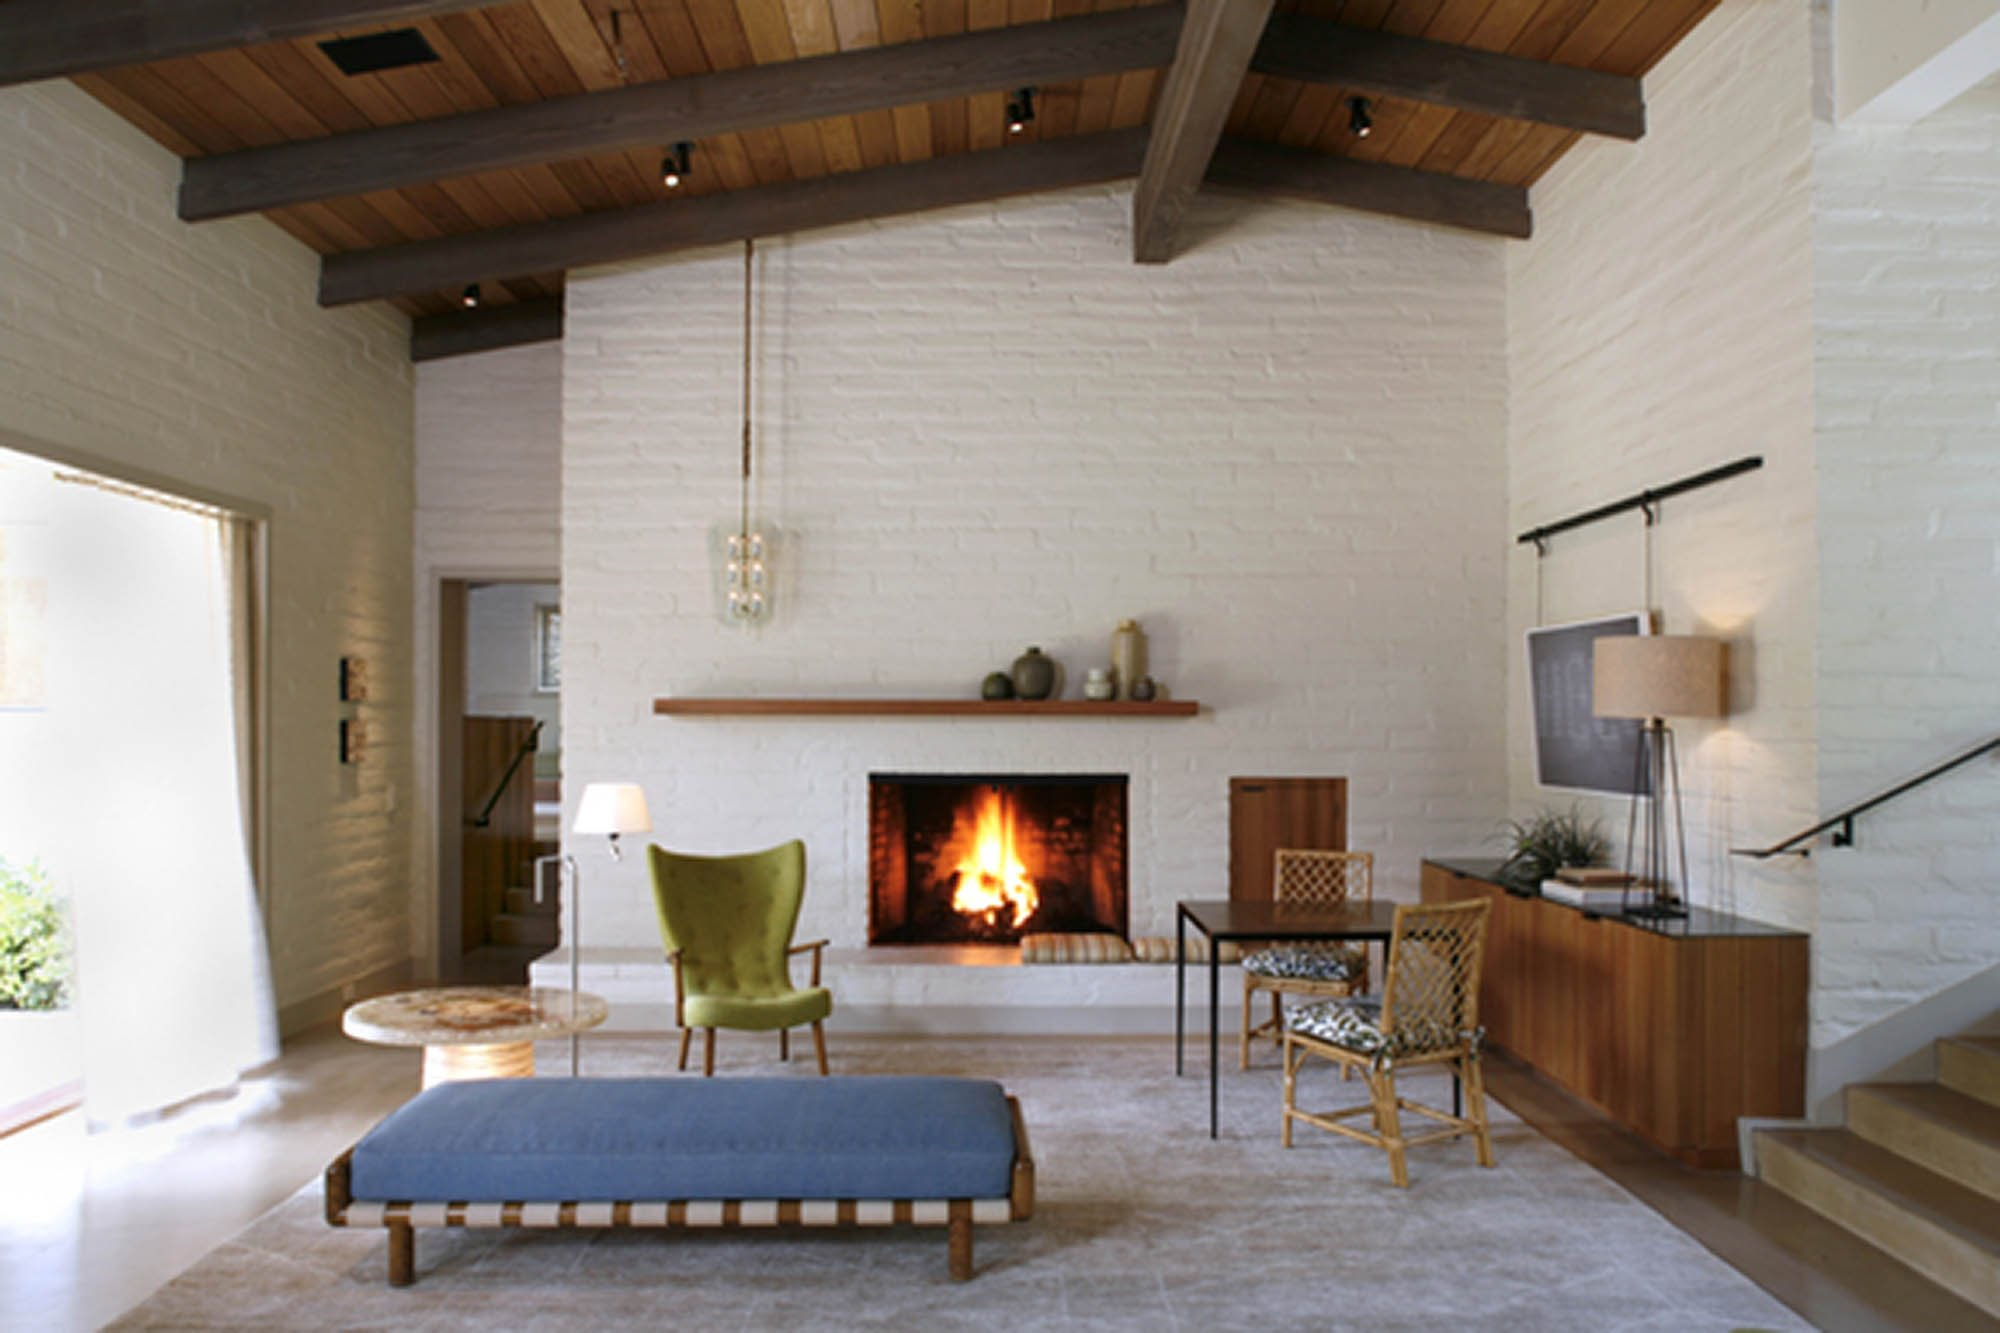 Mid Century Modern Fireplaces mid-century modern renovation fireplace - stephen willrich design